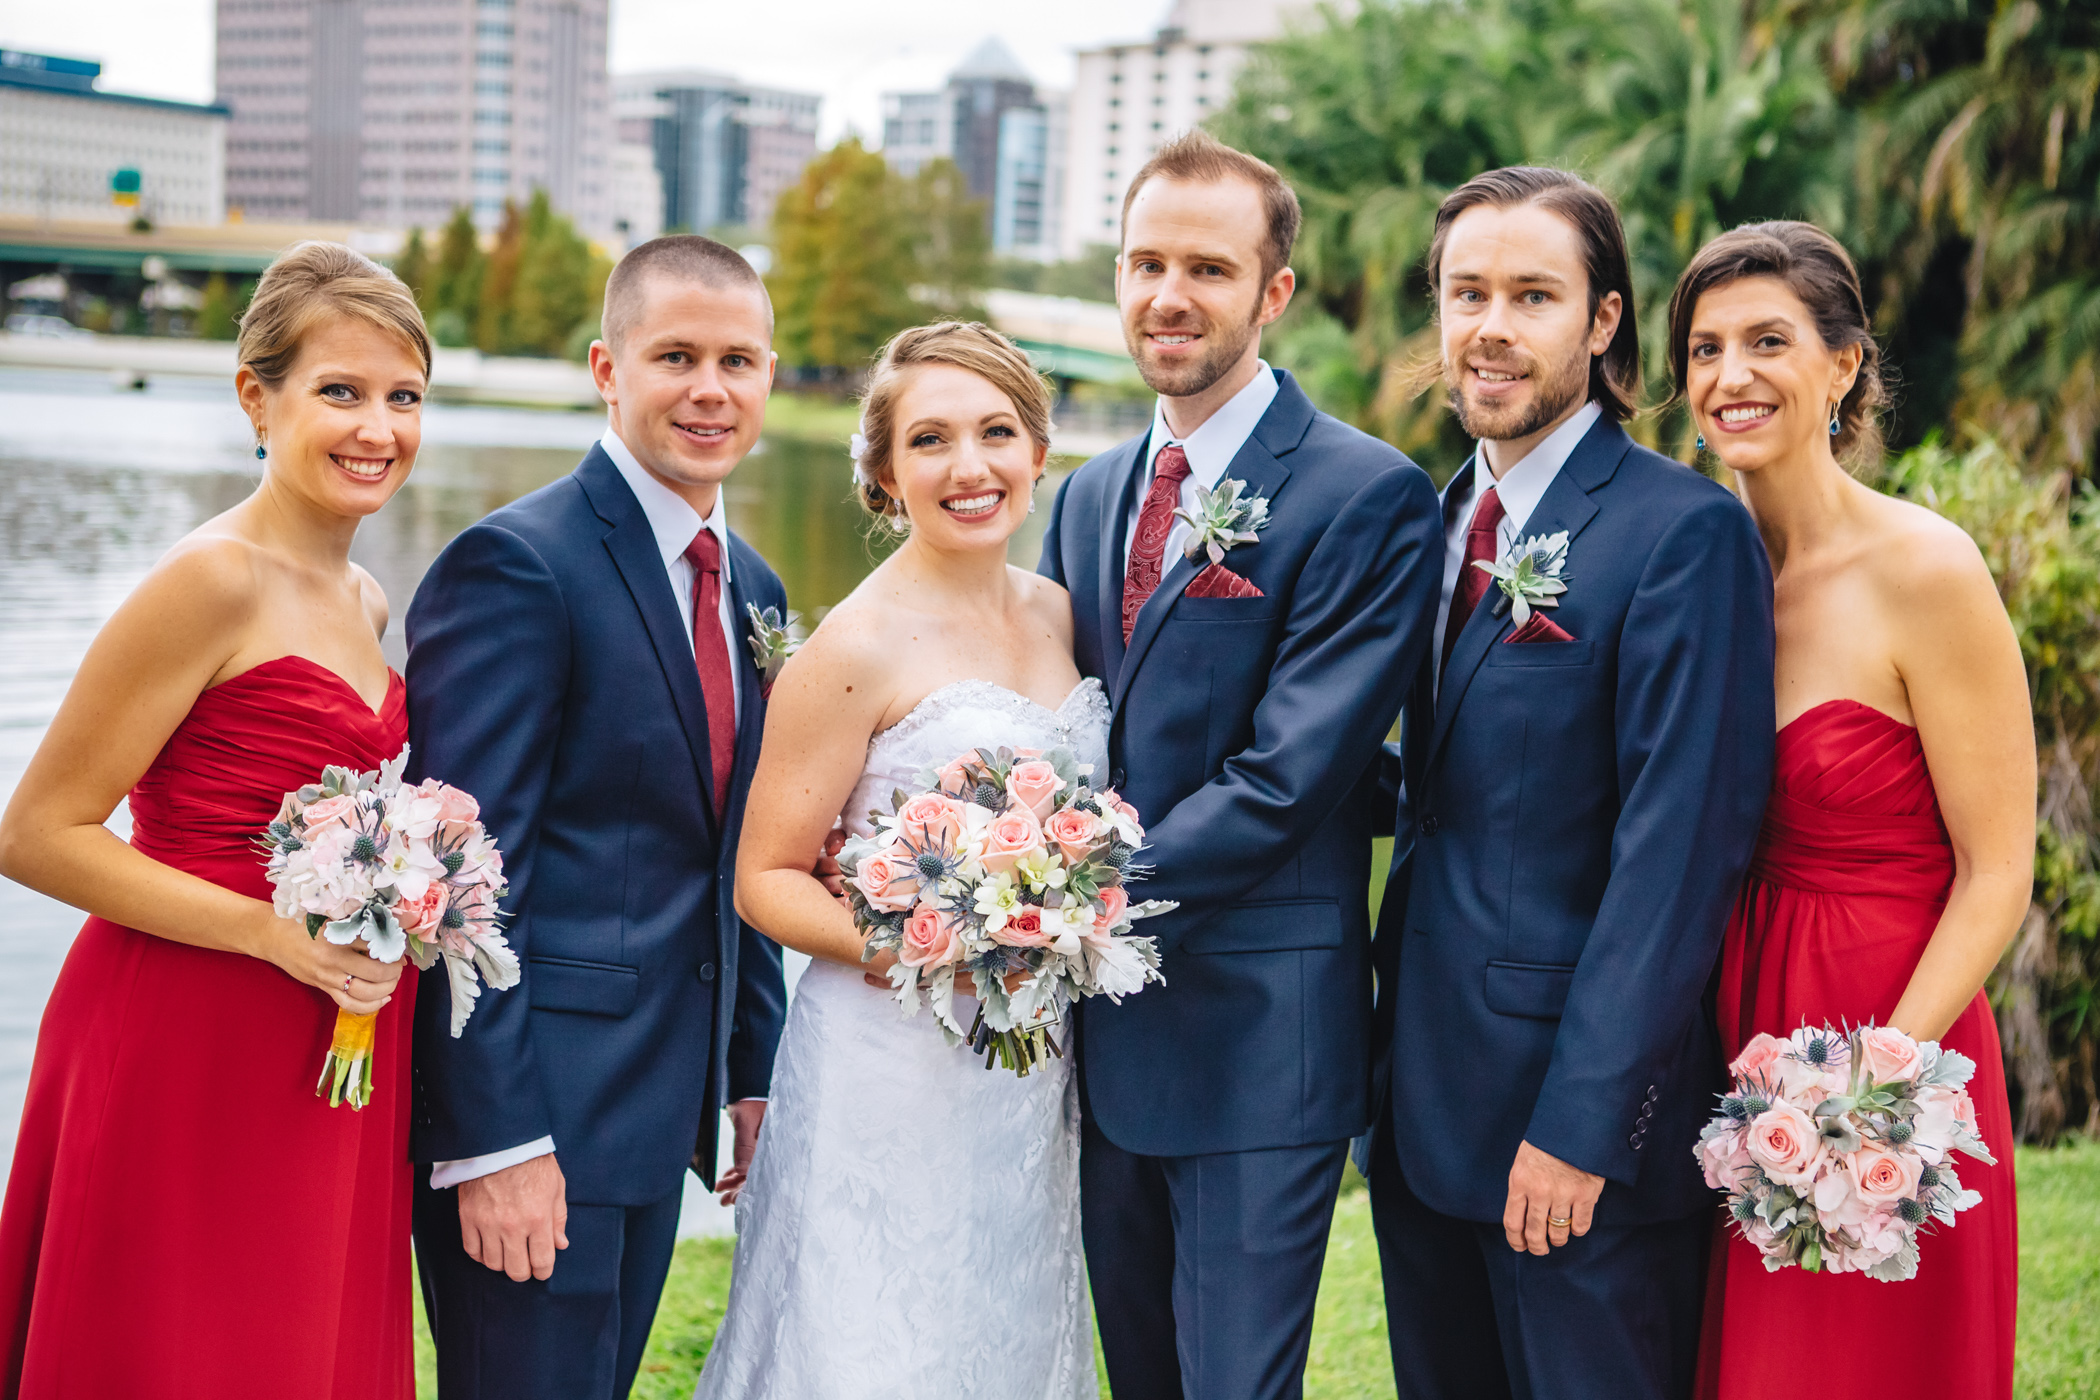 Downtown Orlando Wedding at Lake Lucerne Christmas Theme Red Dress Navy Suits 100.jpg